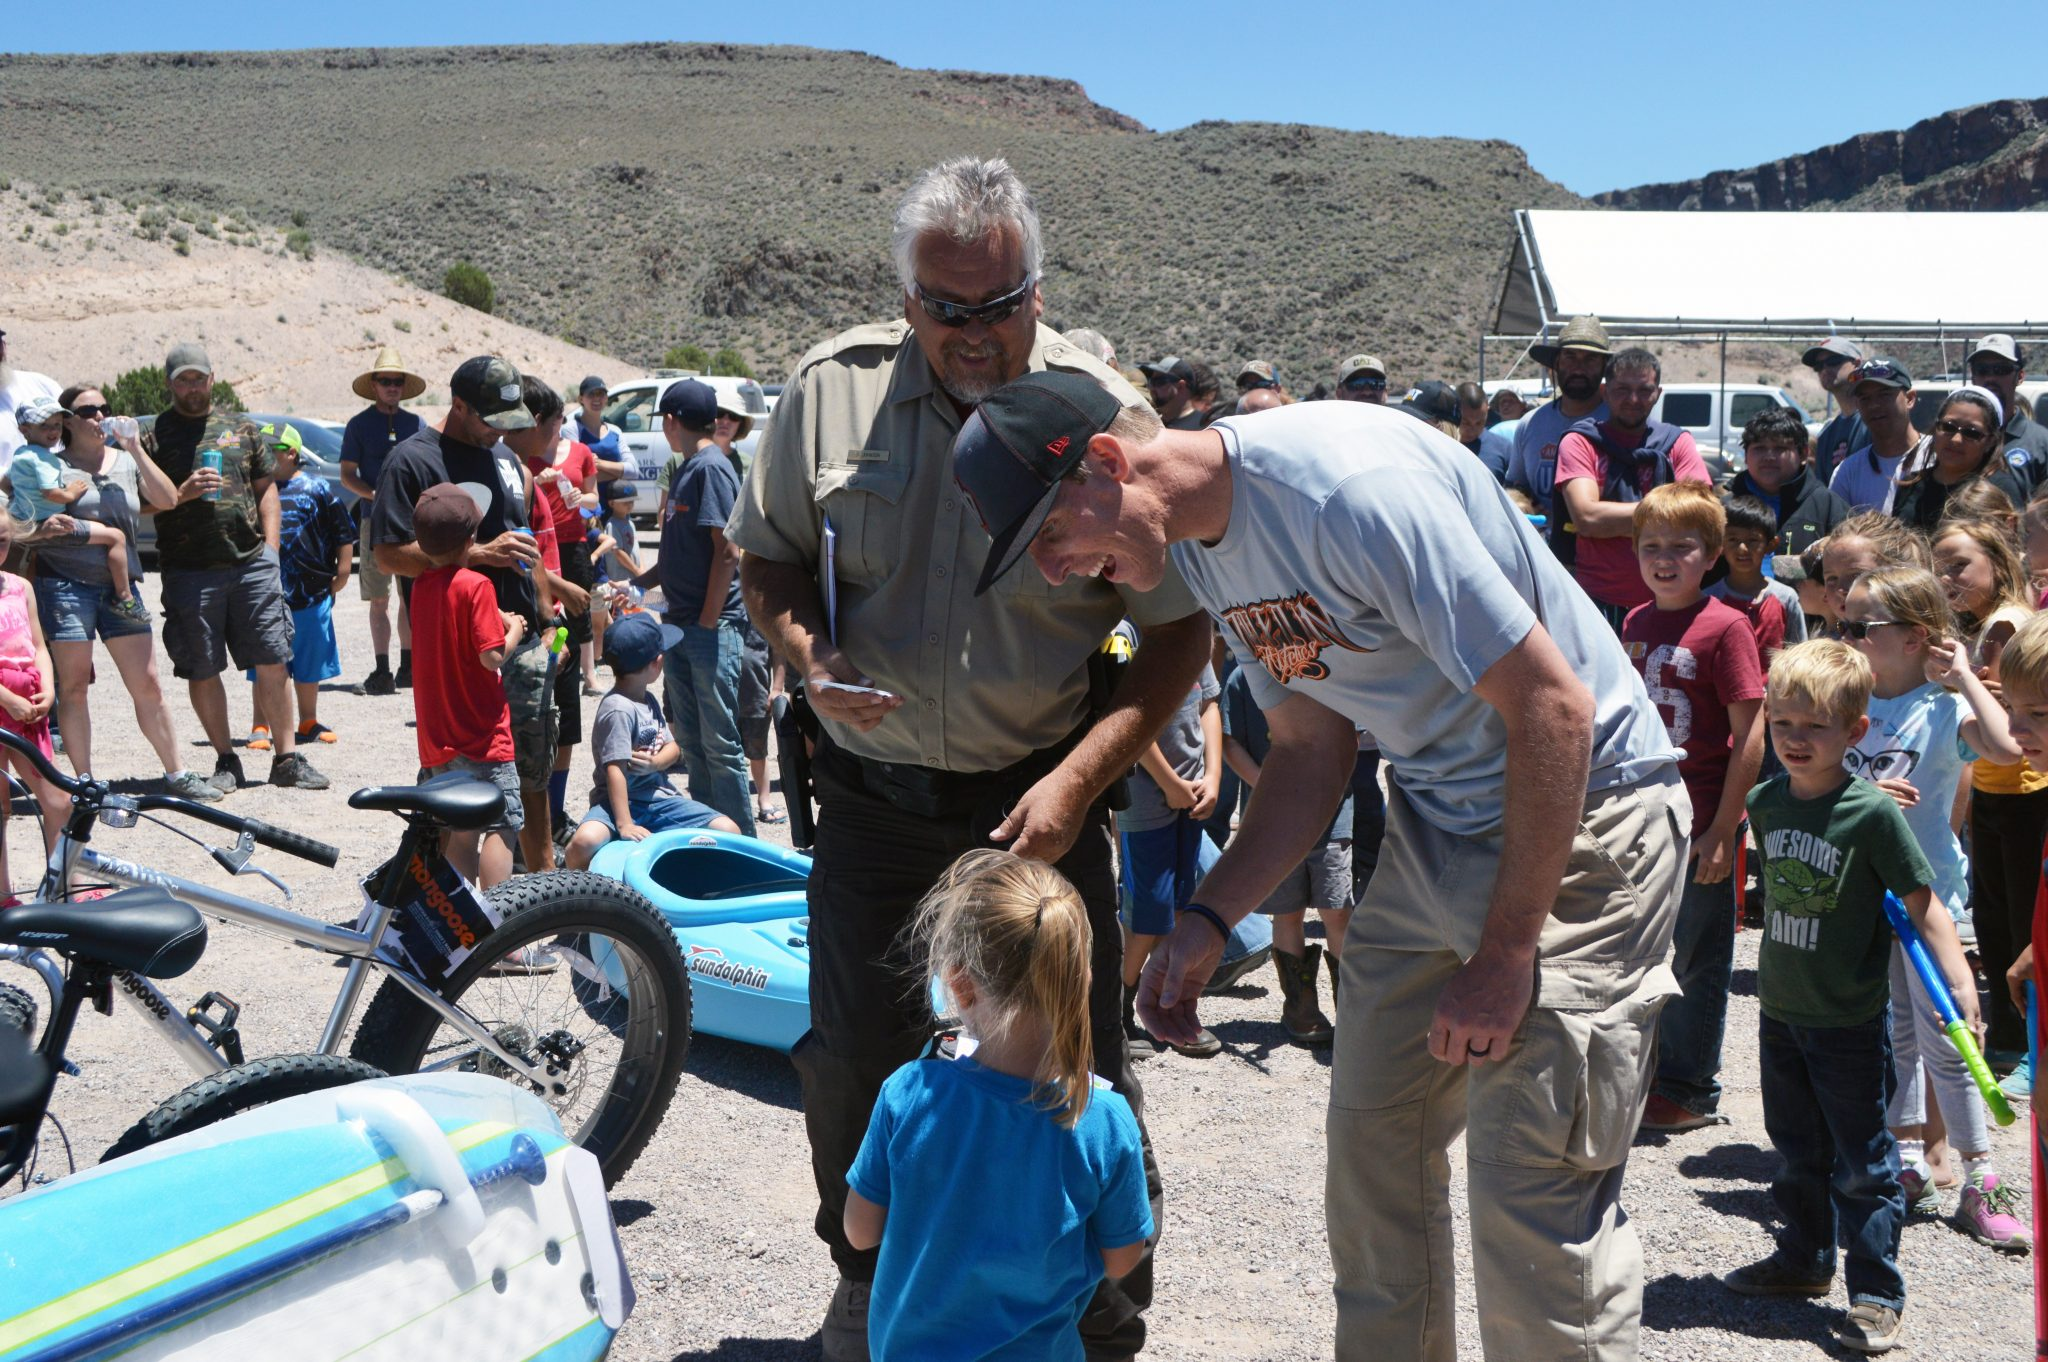 Good turnout for kids fishing event